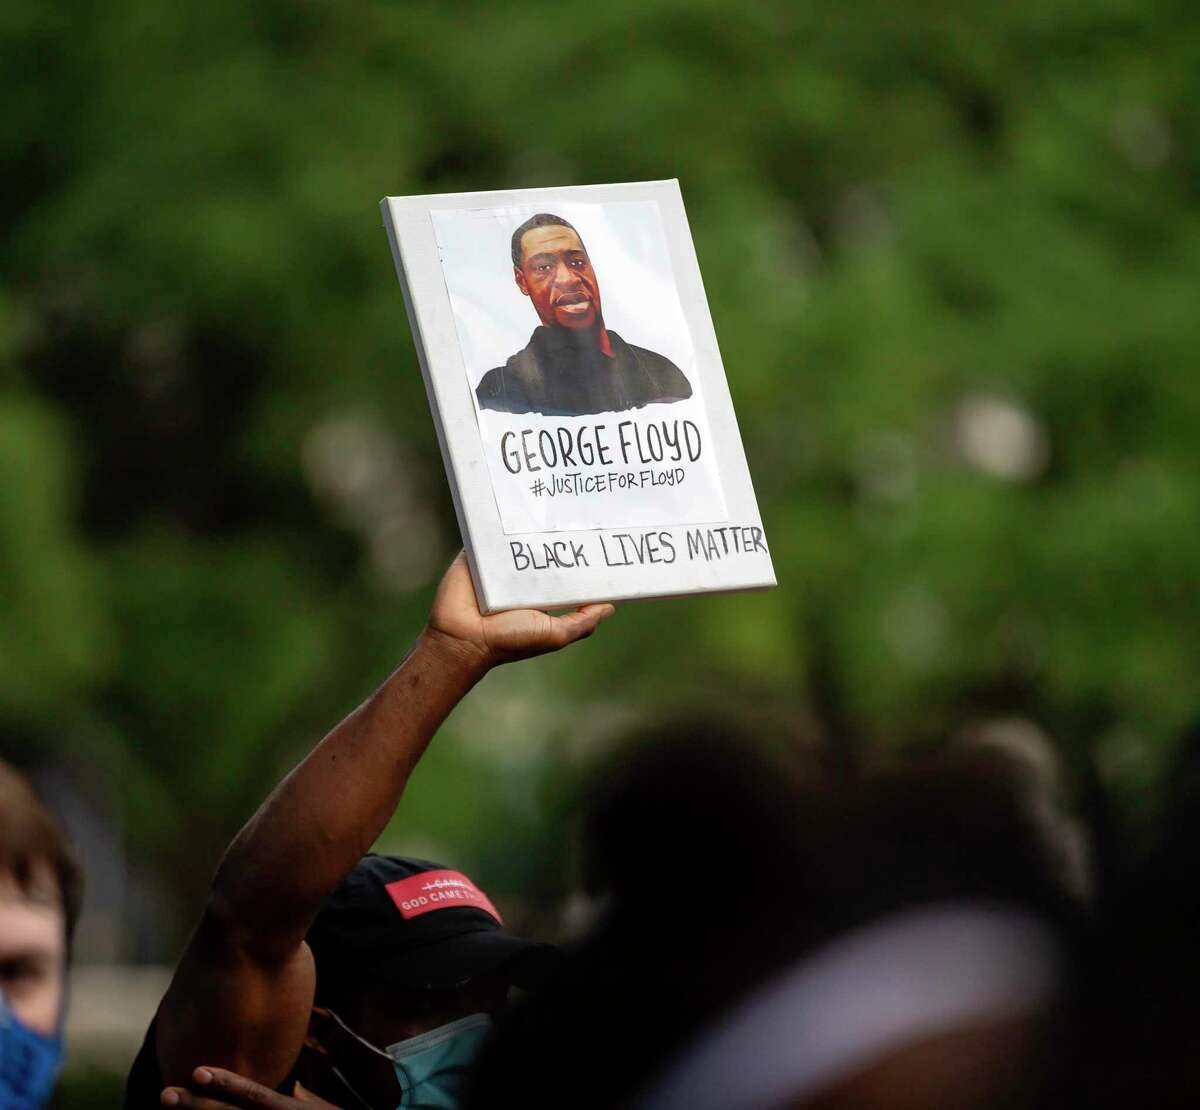 A demonstrator holds a sign at Houston city hall during a candle light vigil in honor of George Floyd who's death sparked protests throughout the country, Thursday, June 4, 2020.